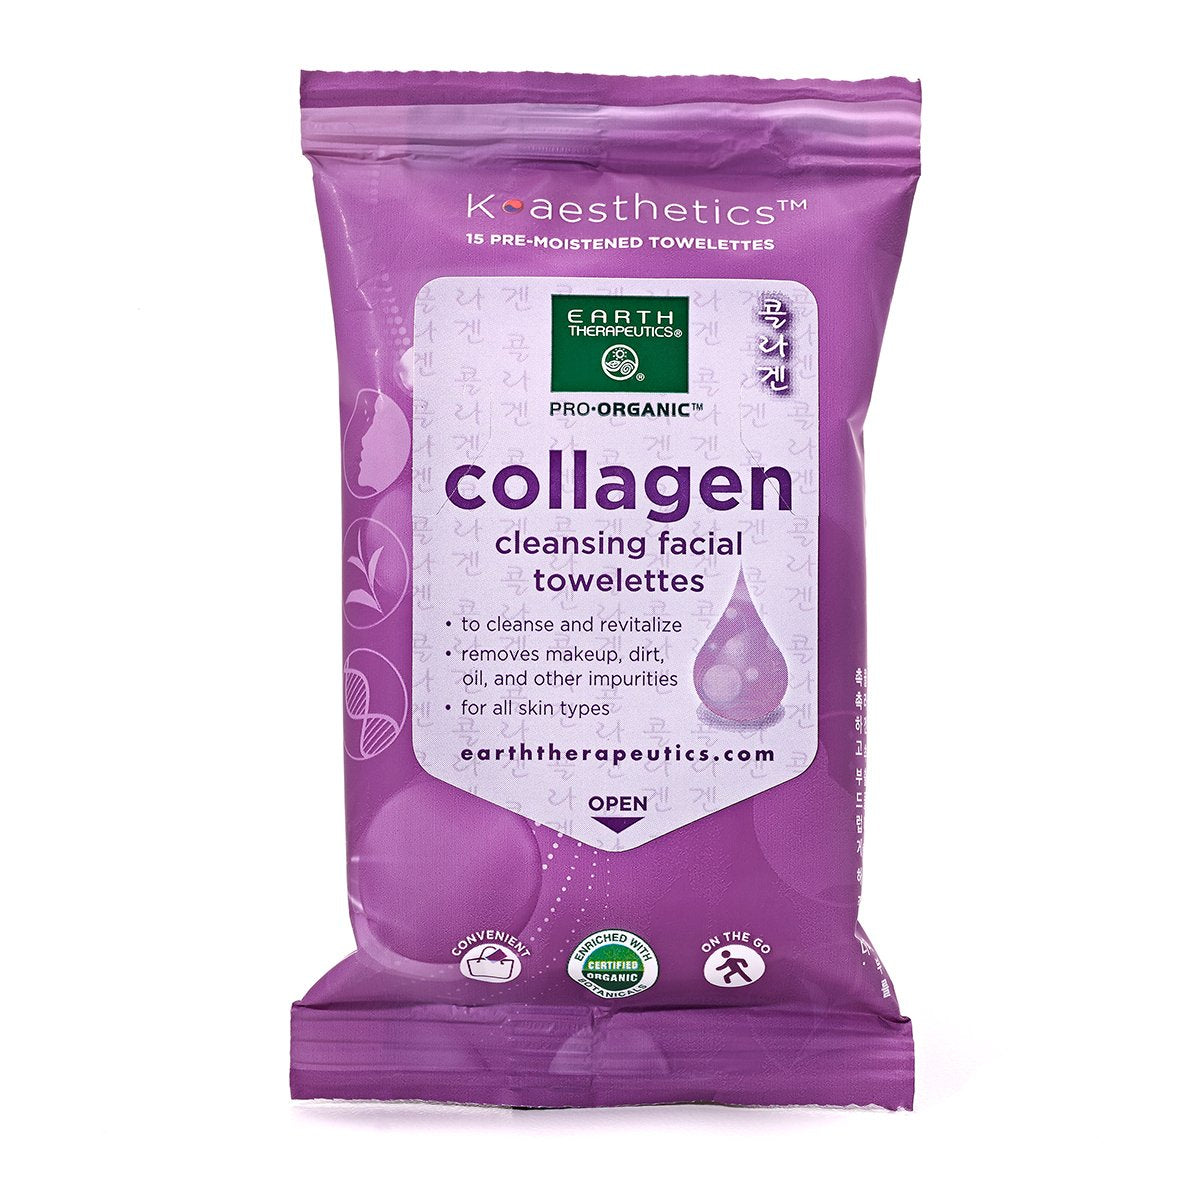 Collagen Cleansing Facial Towelettes - Travel Size